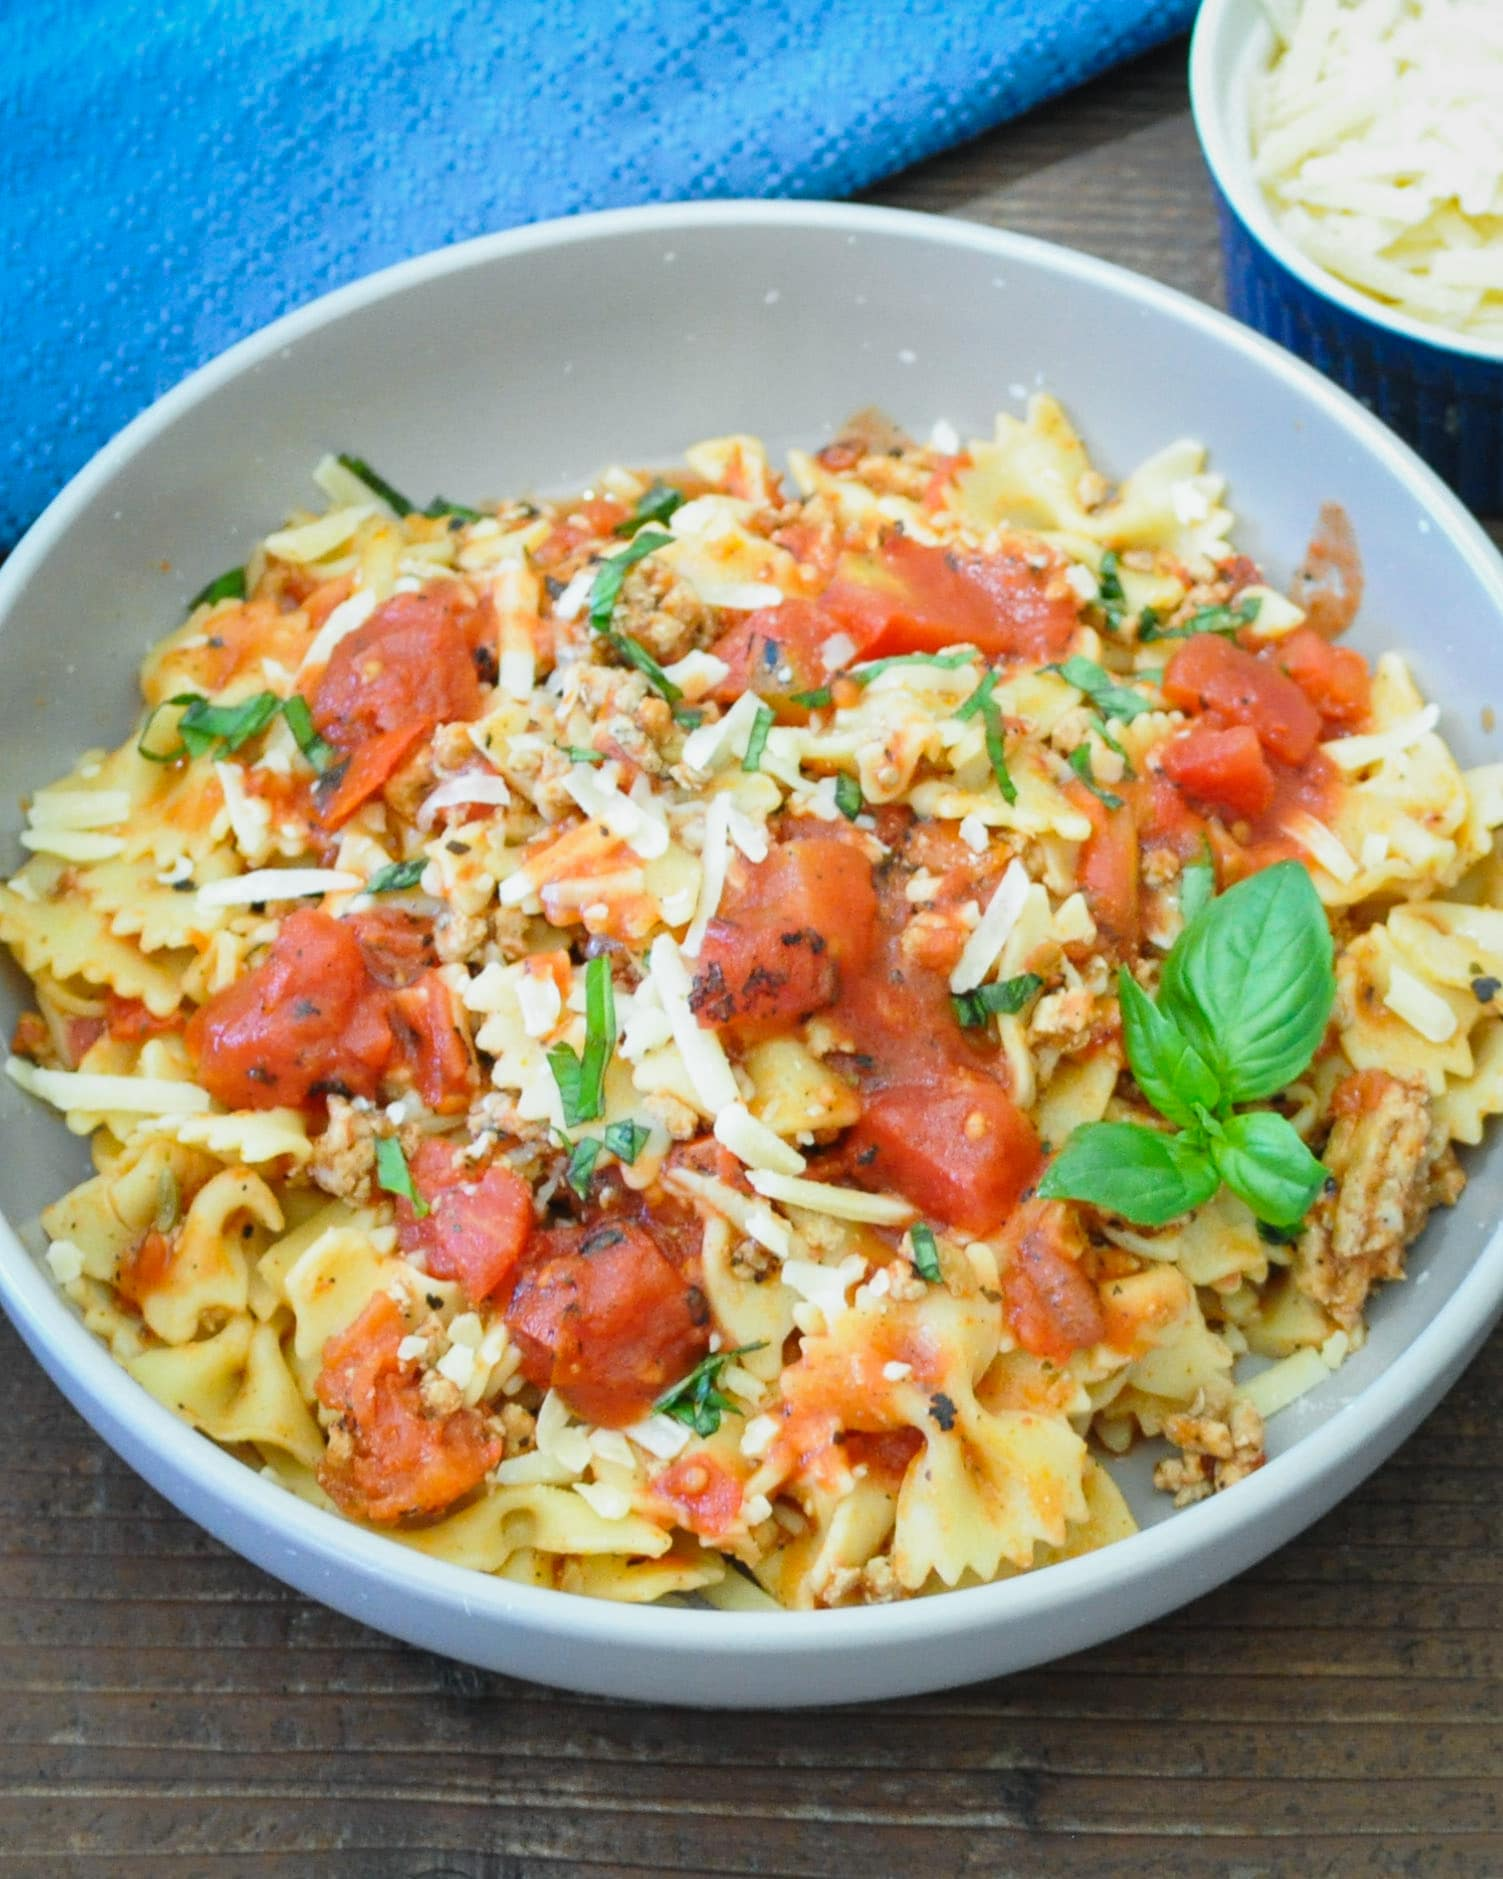 ground turkey, pasta with tomatoes in a gray bowl